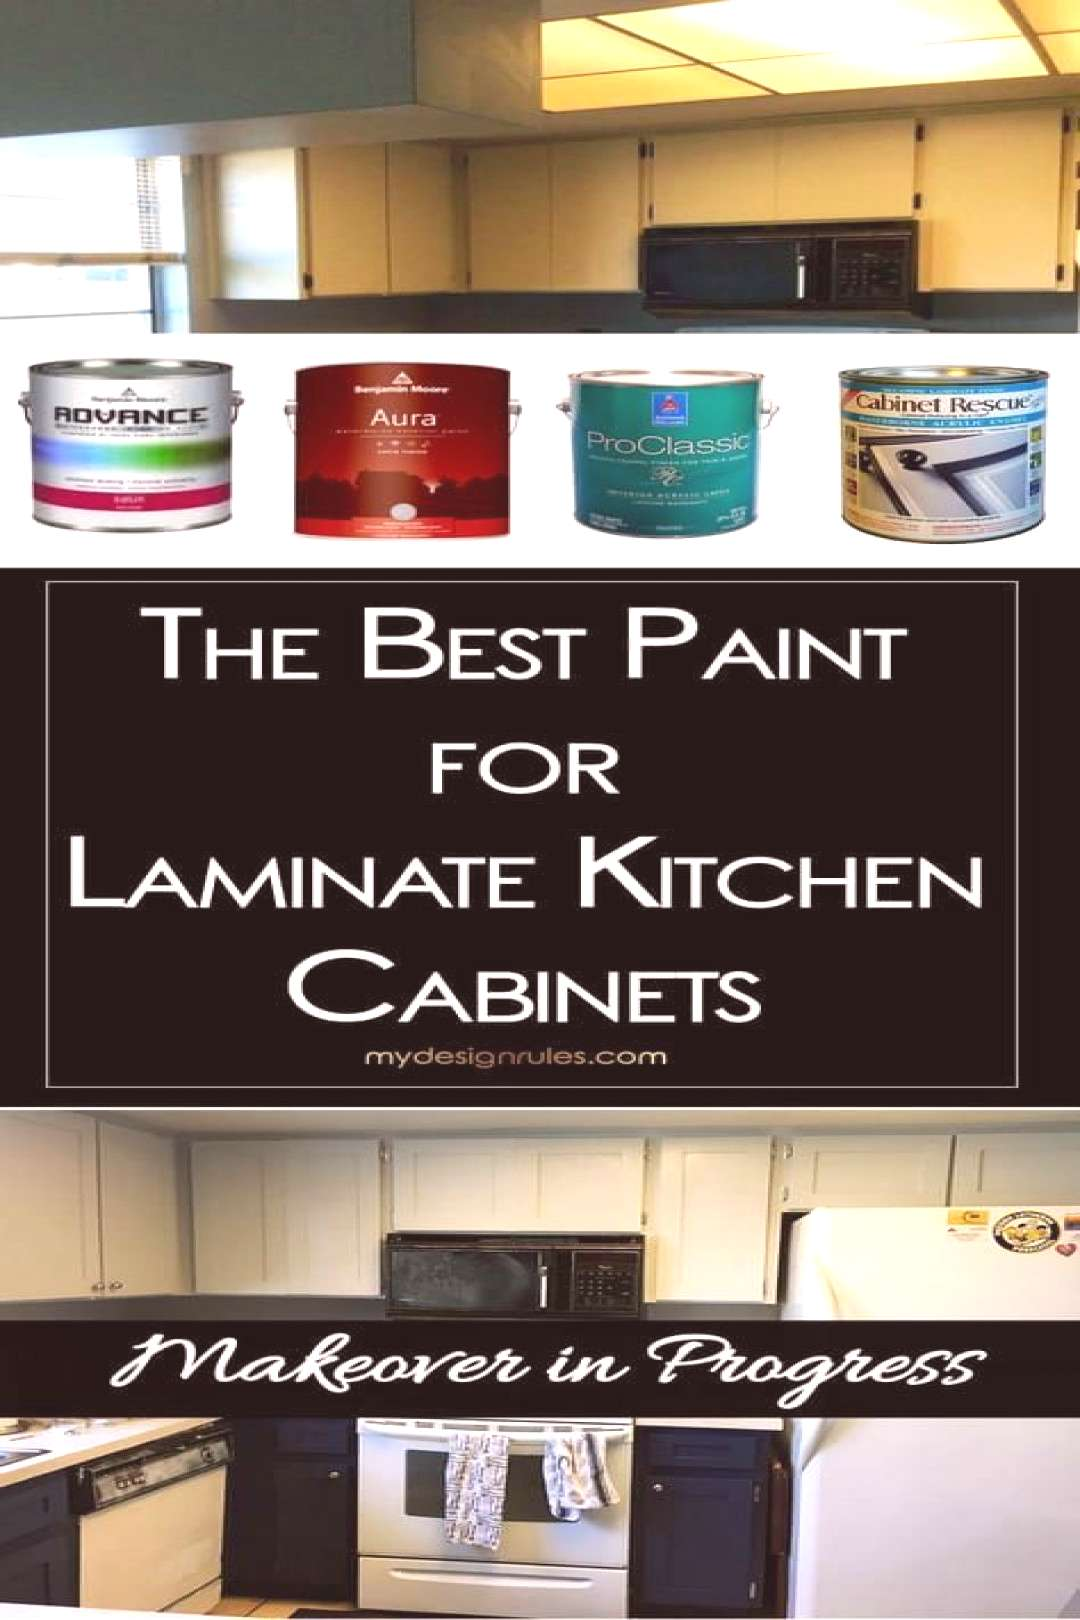 What s the Best Paint for Laminate Cabinets What s the Best Paint for Laminate Cabinets Christine T